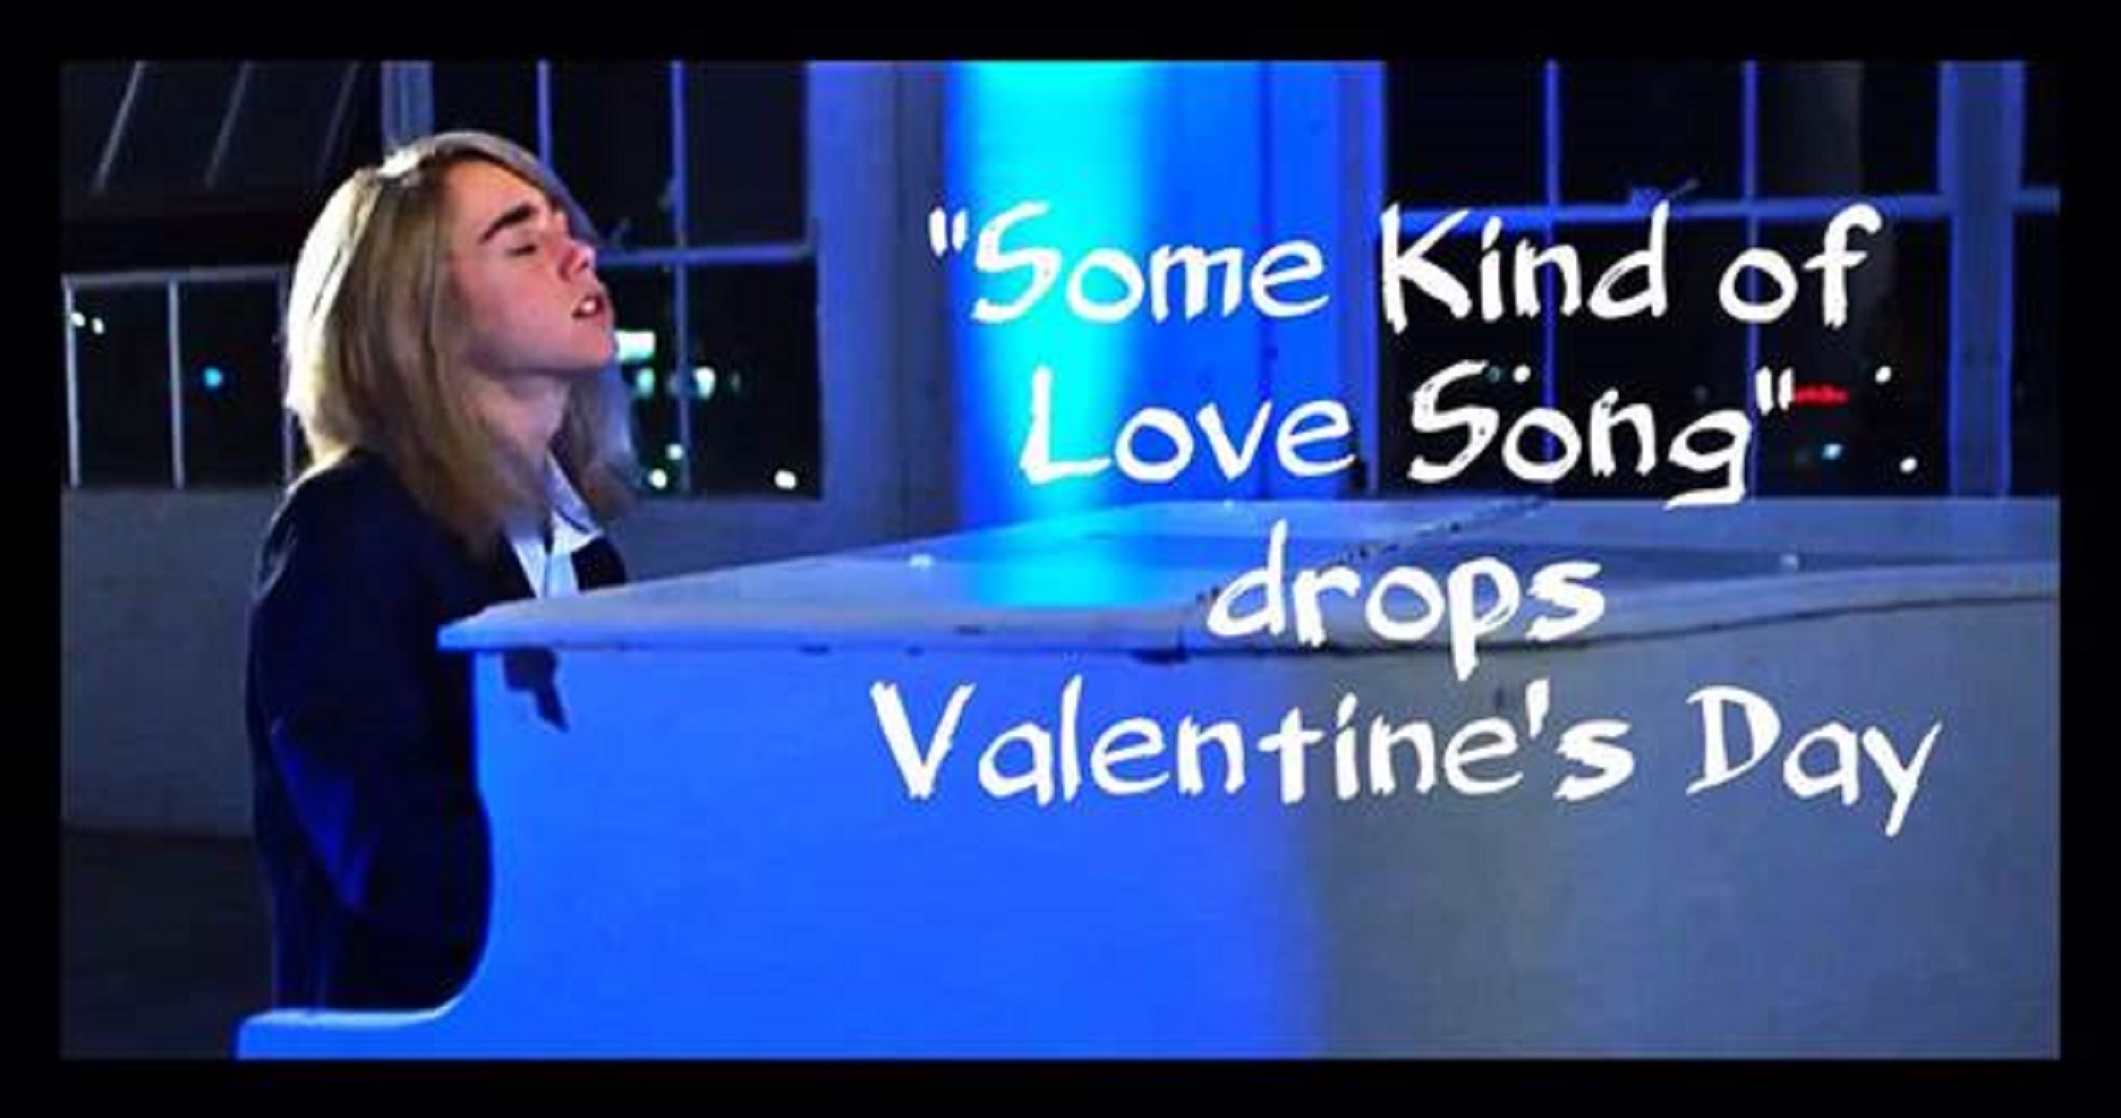 Some Kind of Love Song Video by Griffin Tucker to be Released on Valentine's Day